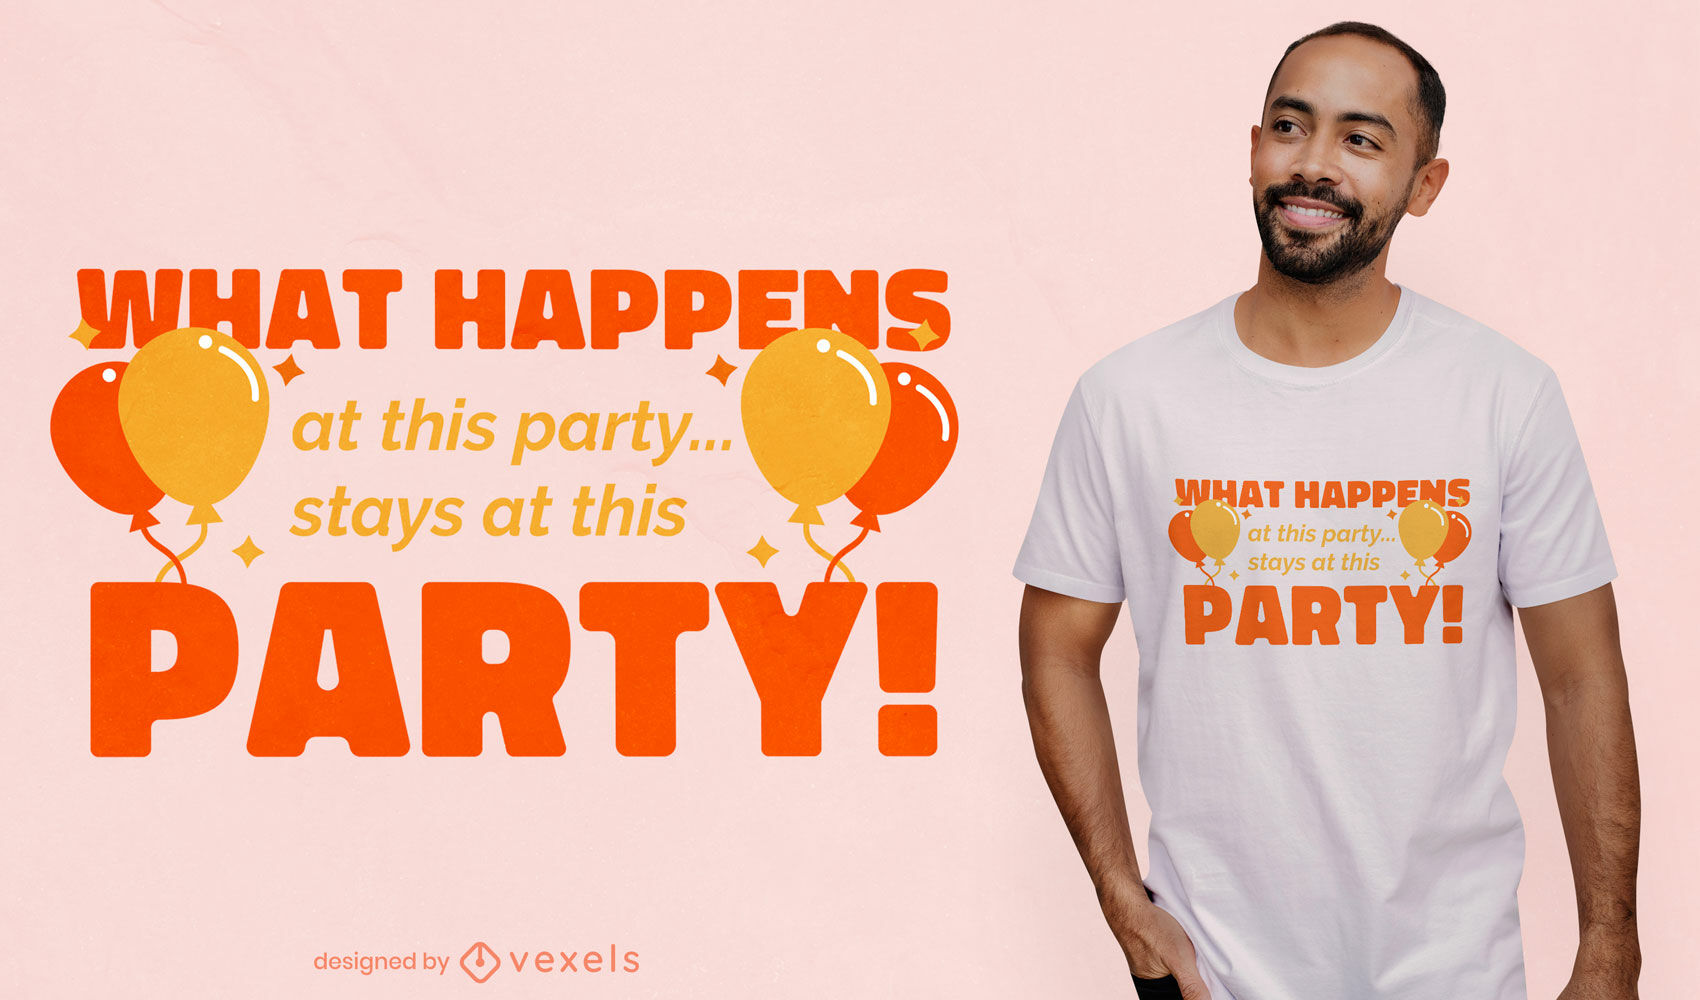 What happens at the party t-shirt design